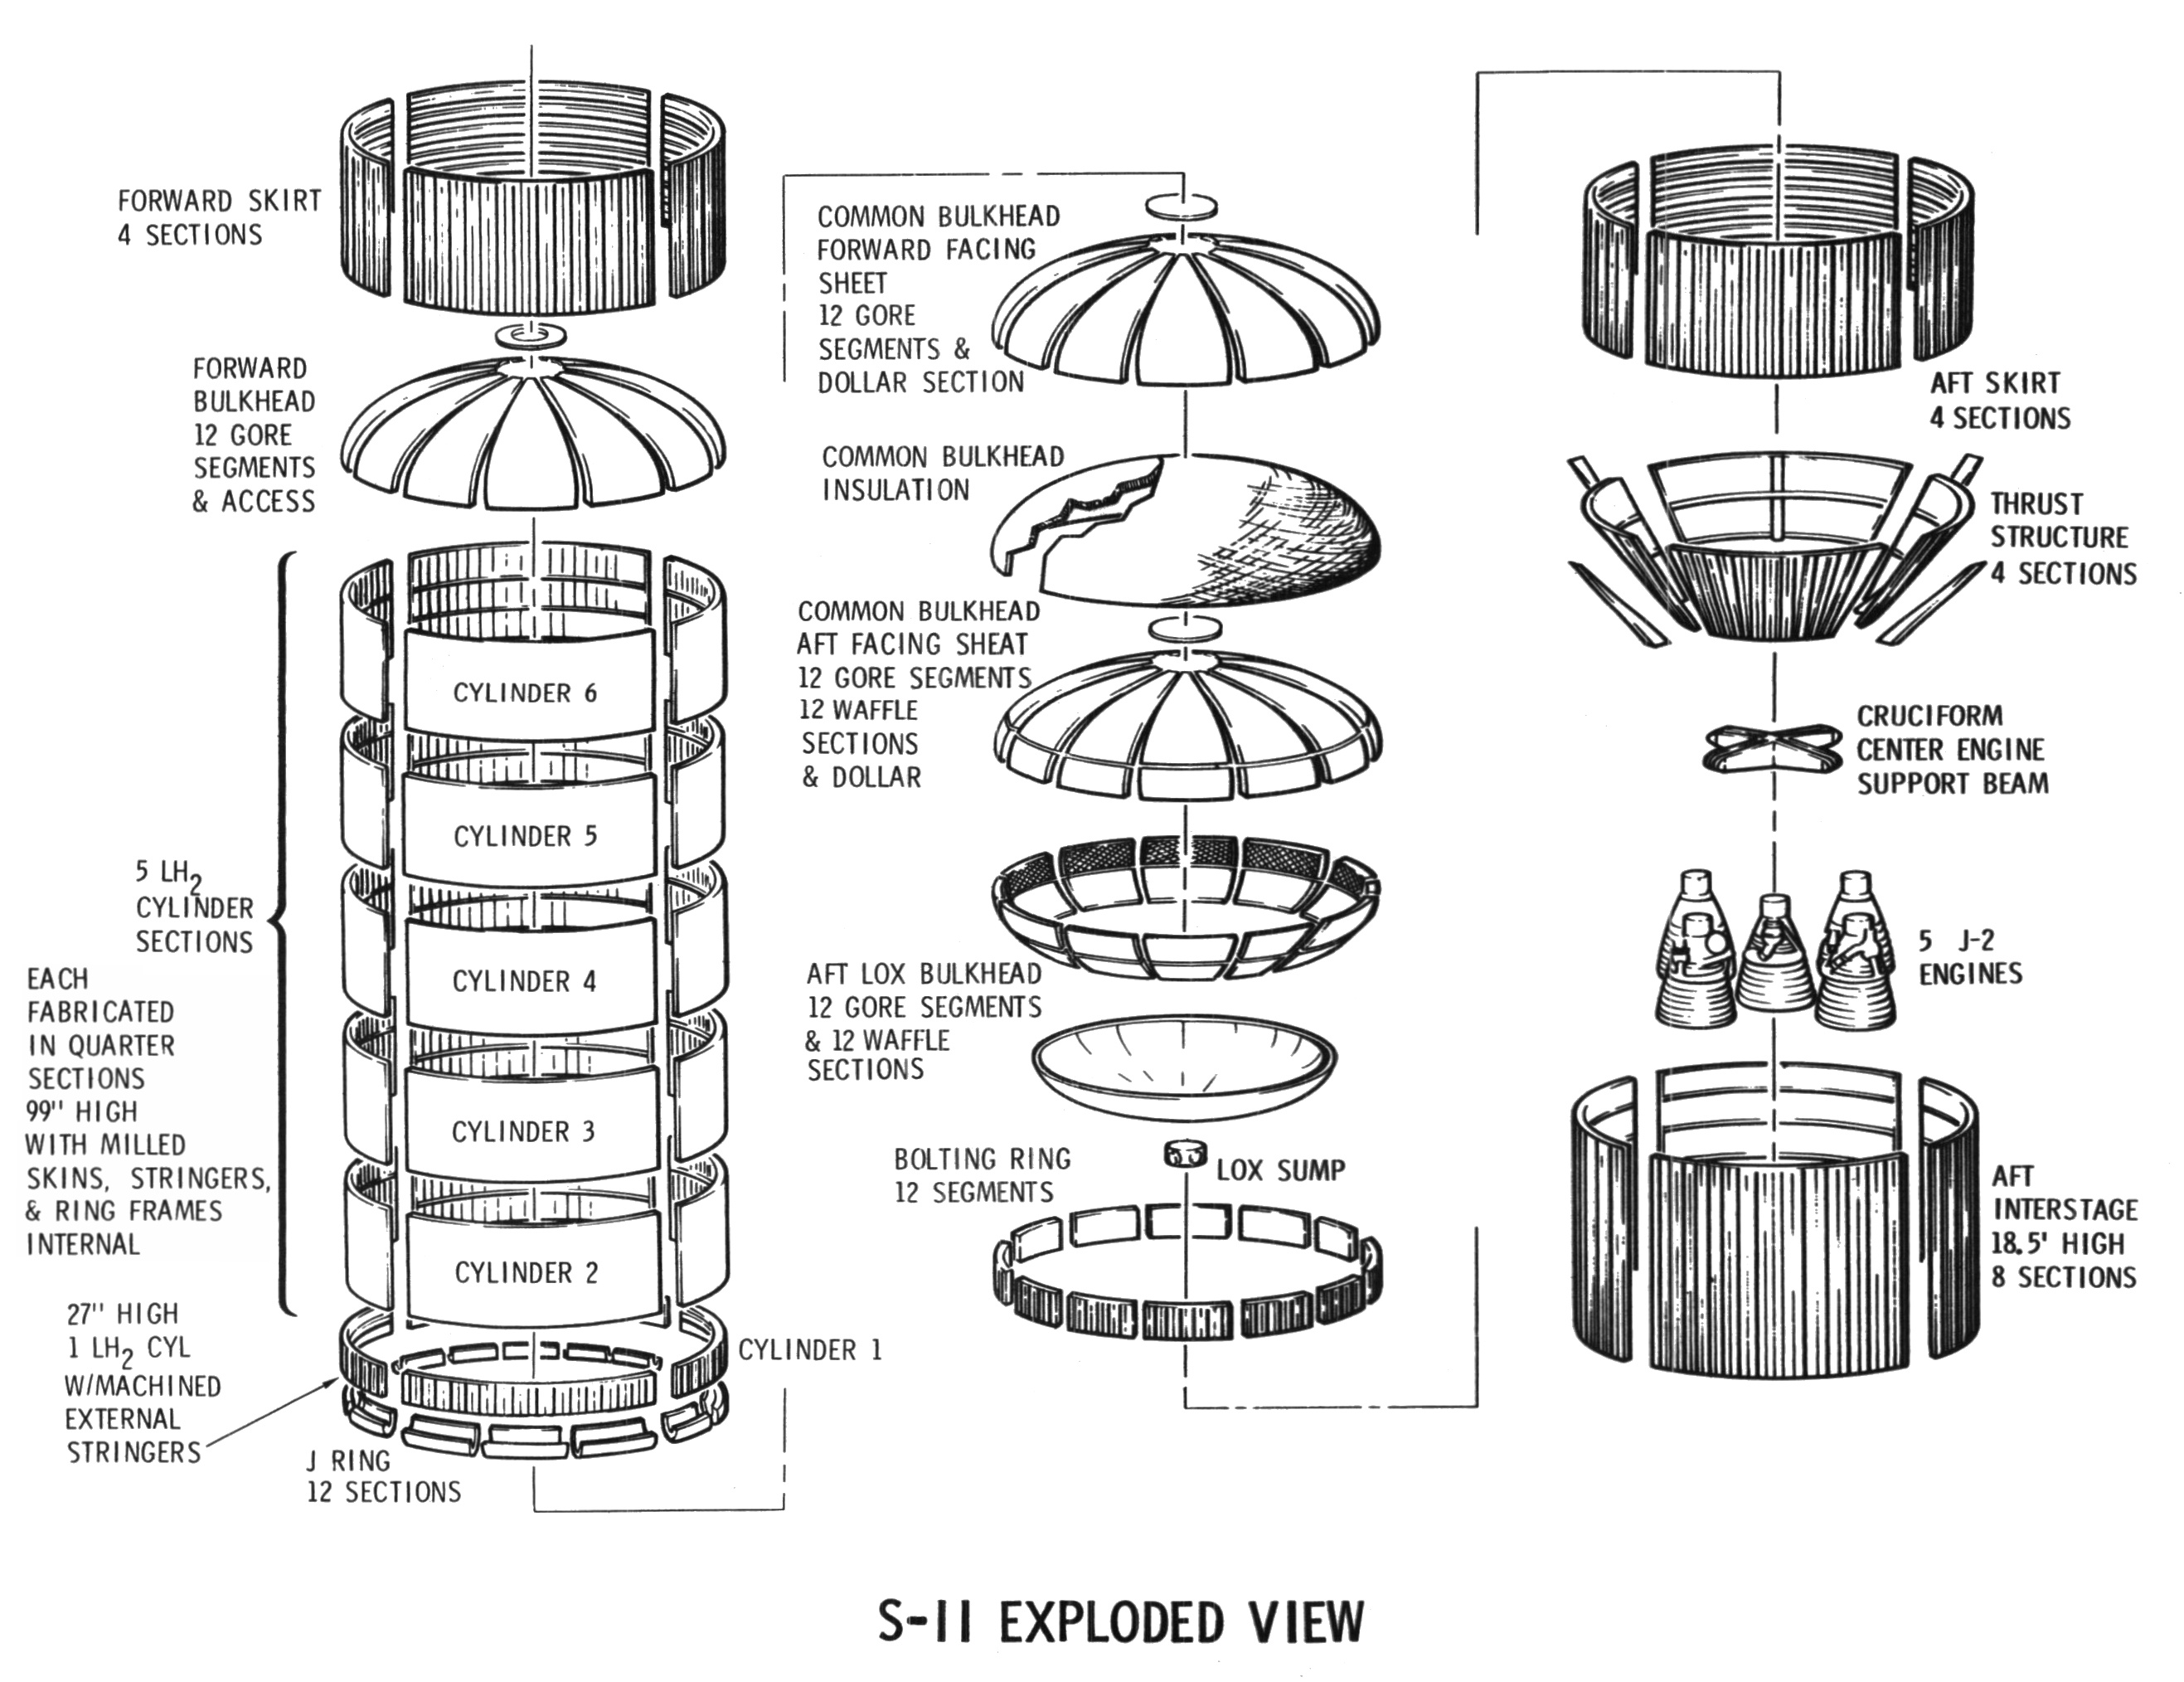 File Helicopter AnatomySVG together with 72328 together with I I Pus besides Cat Pump 8058 Direct Drive Gearbox as well Cylinder Block Automobile. on exploded diagram of engine